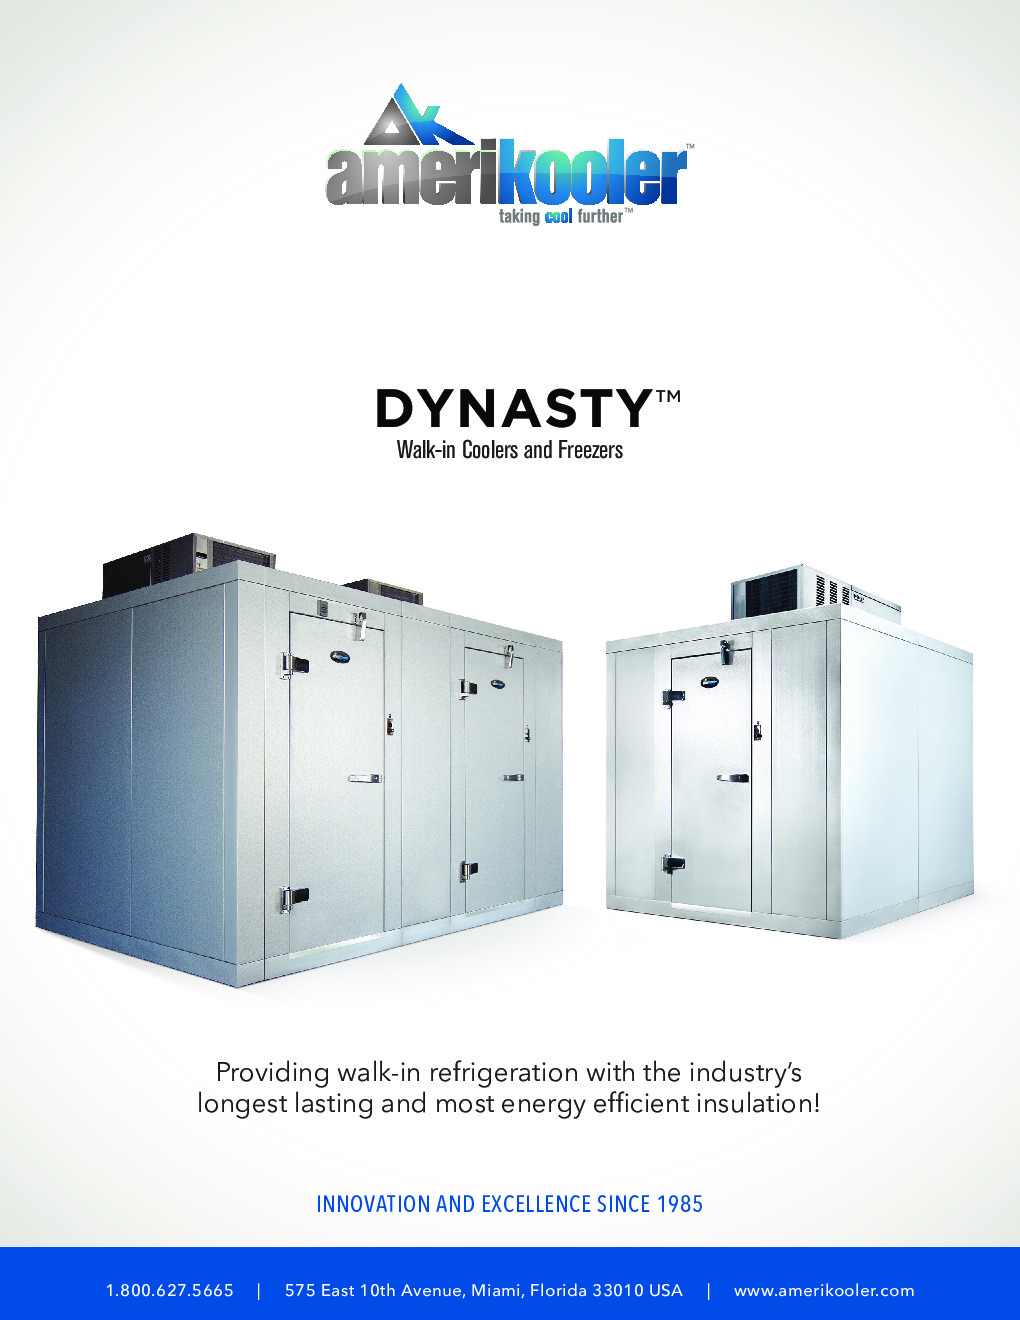 AmeriKooler DW081477F-6/8-RM 8' X 14' Walk-In Cooler, 8' L Cooler with Floor and 6' L Freezer, Remote